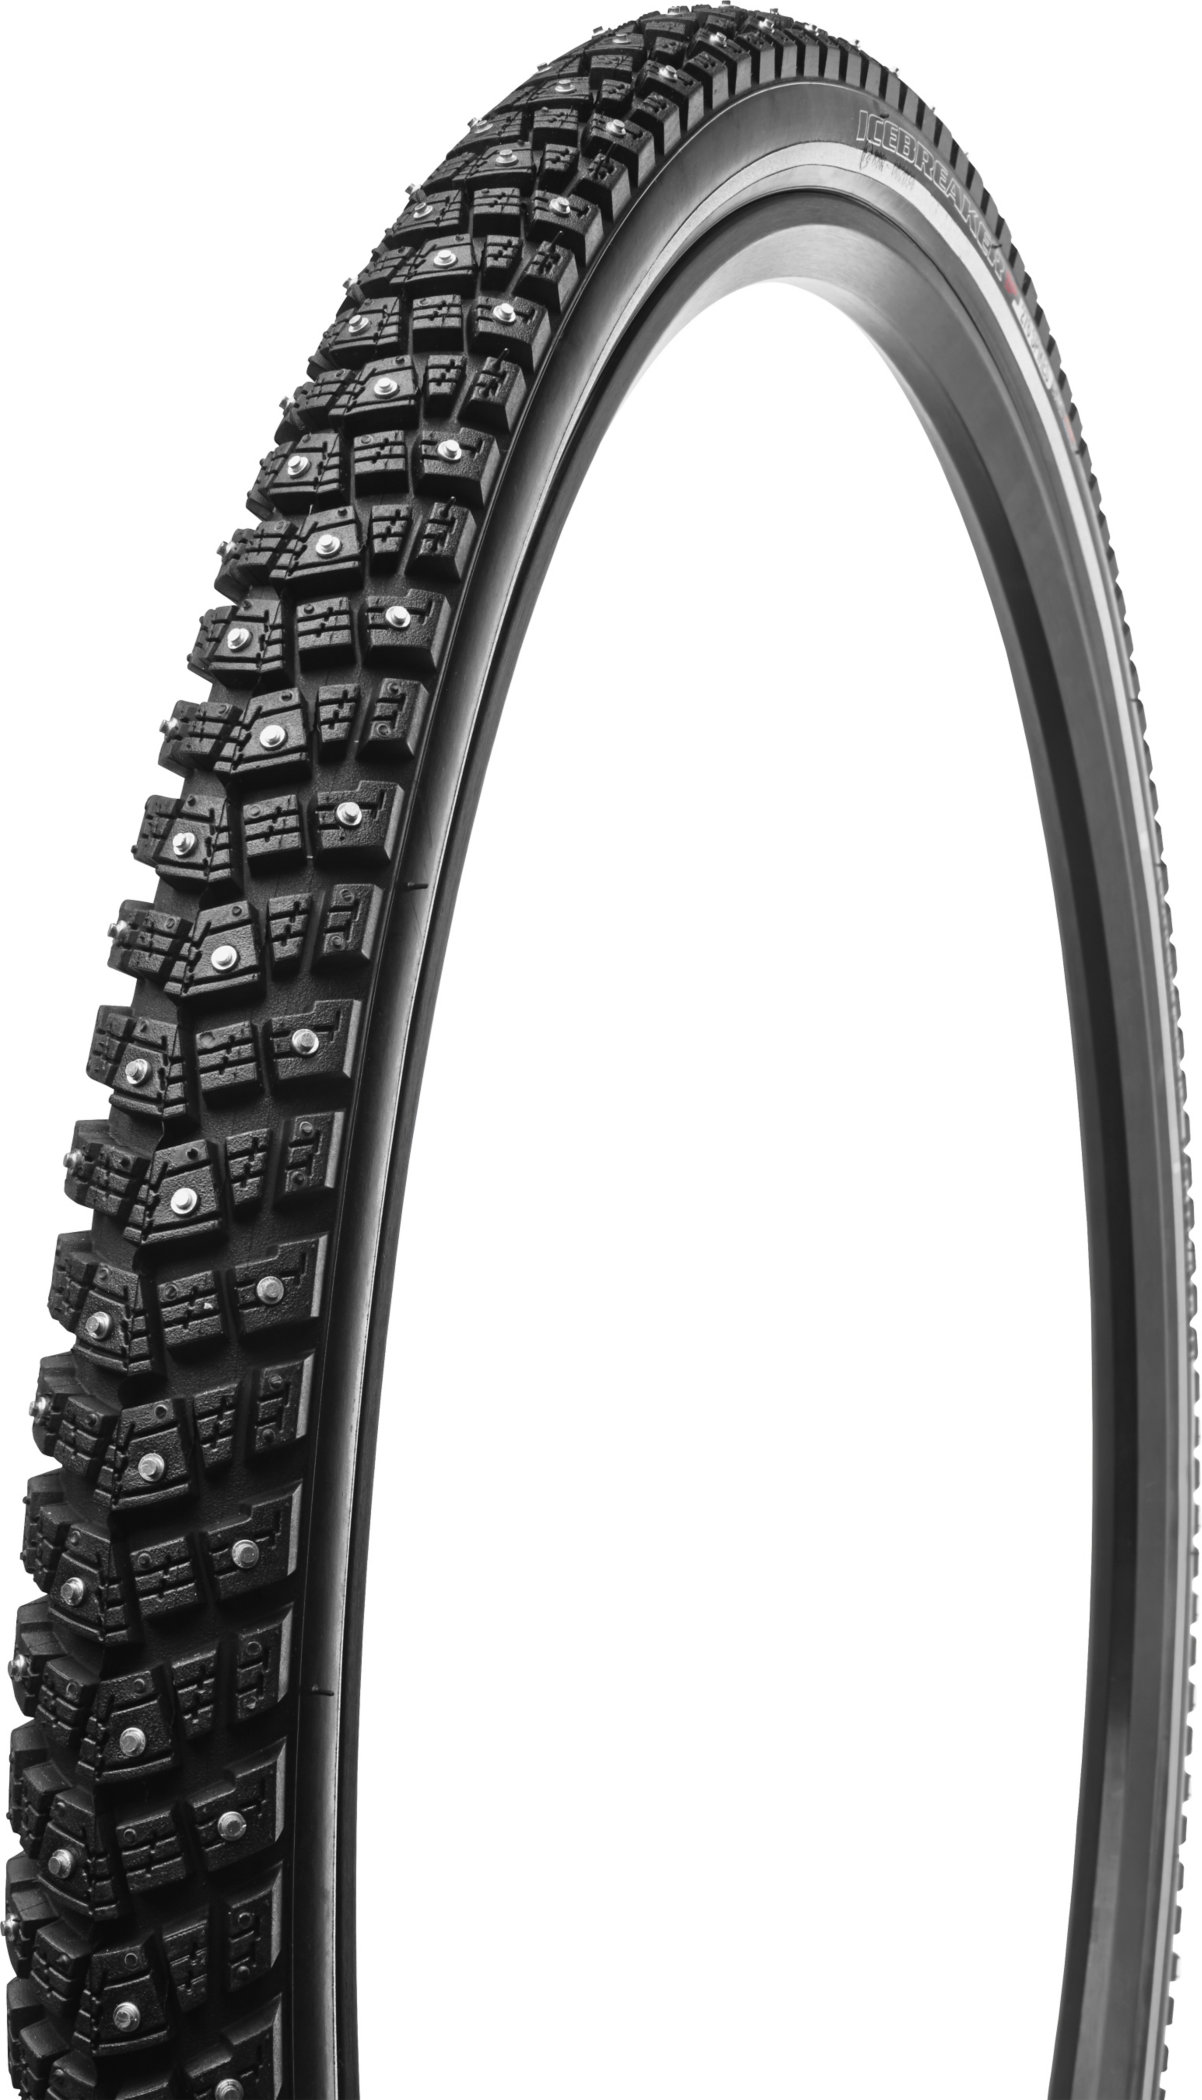 SPECIALIZED ICEBREAKER 276 FULL STUD REFLECT TIRE 700X38C - Alpha Bikes